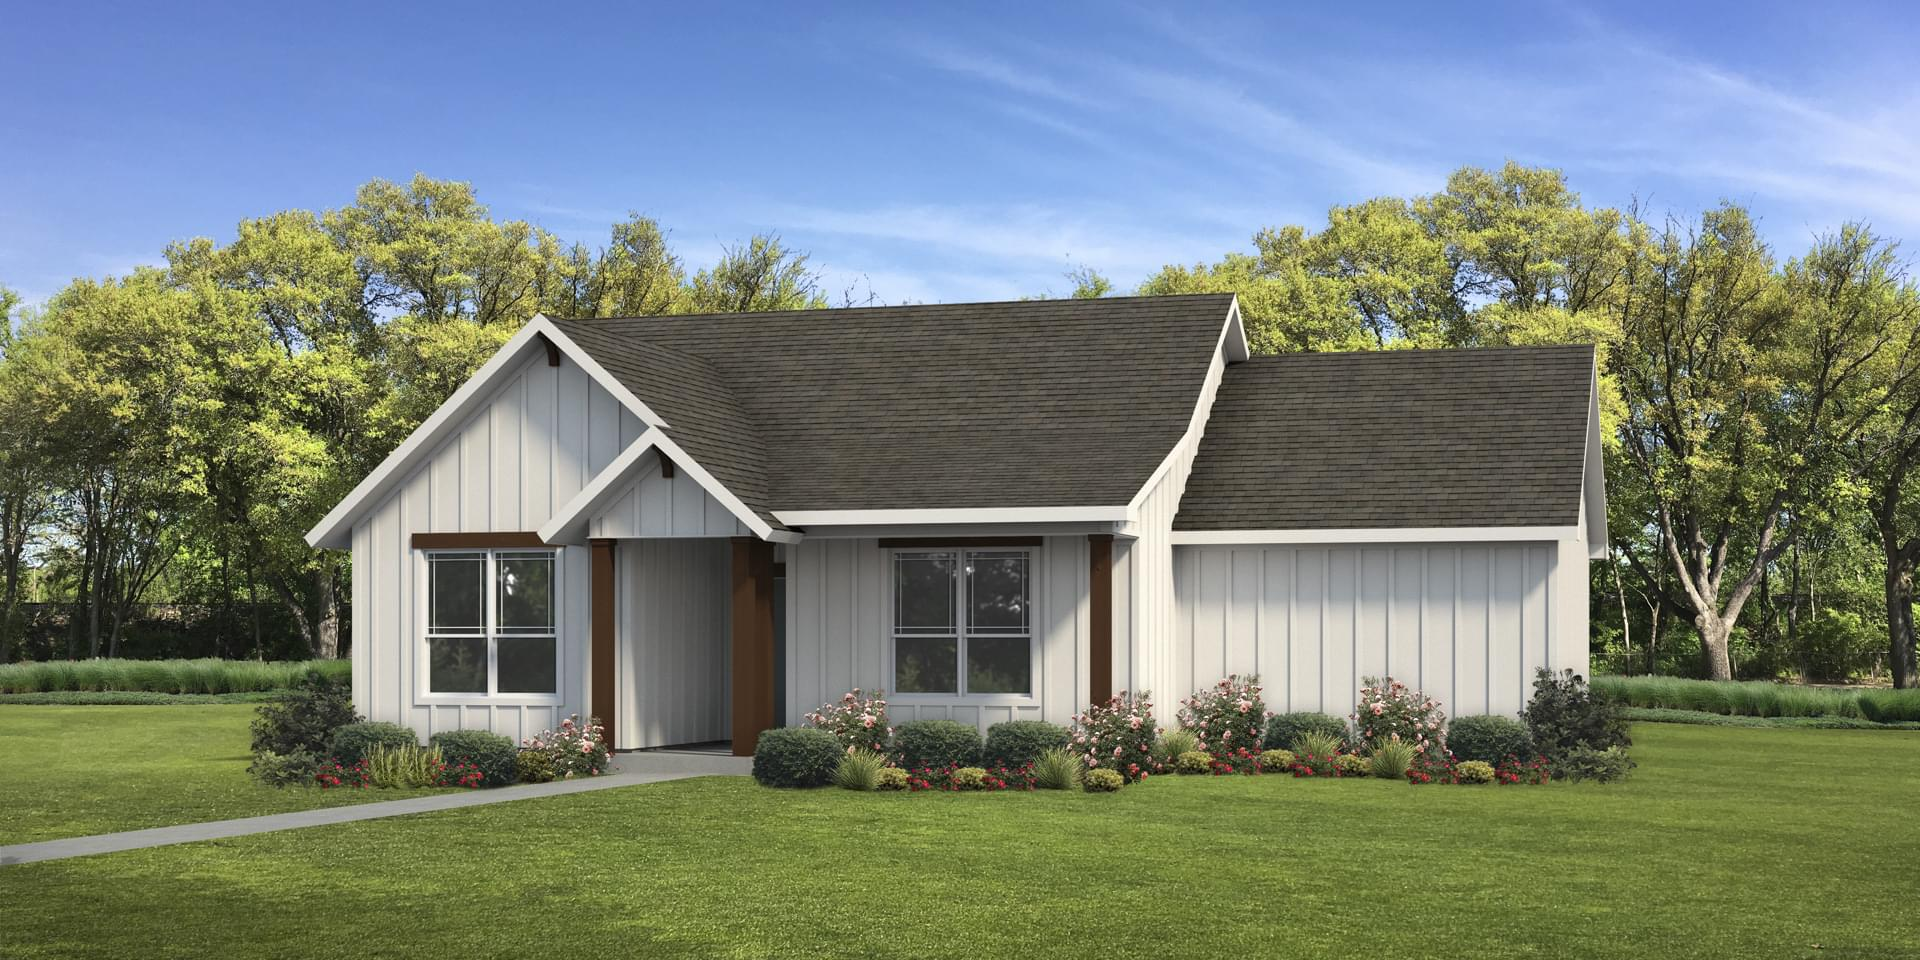 The Velasco Custom Home Plan from Tilson Homes